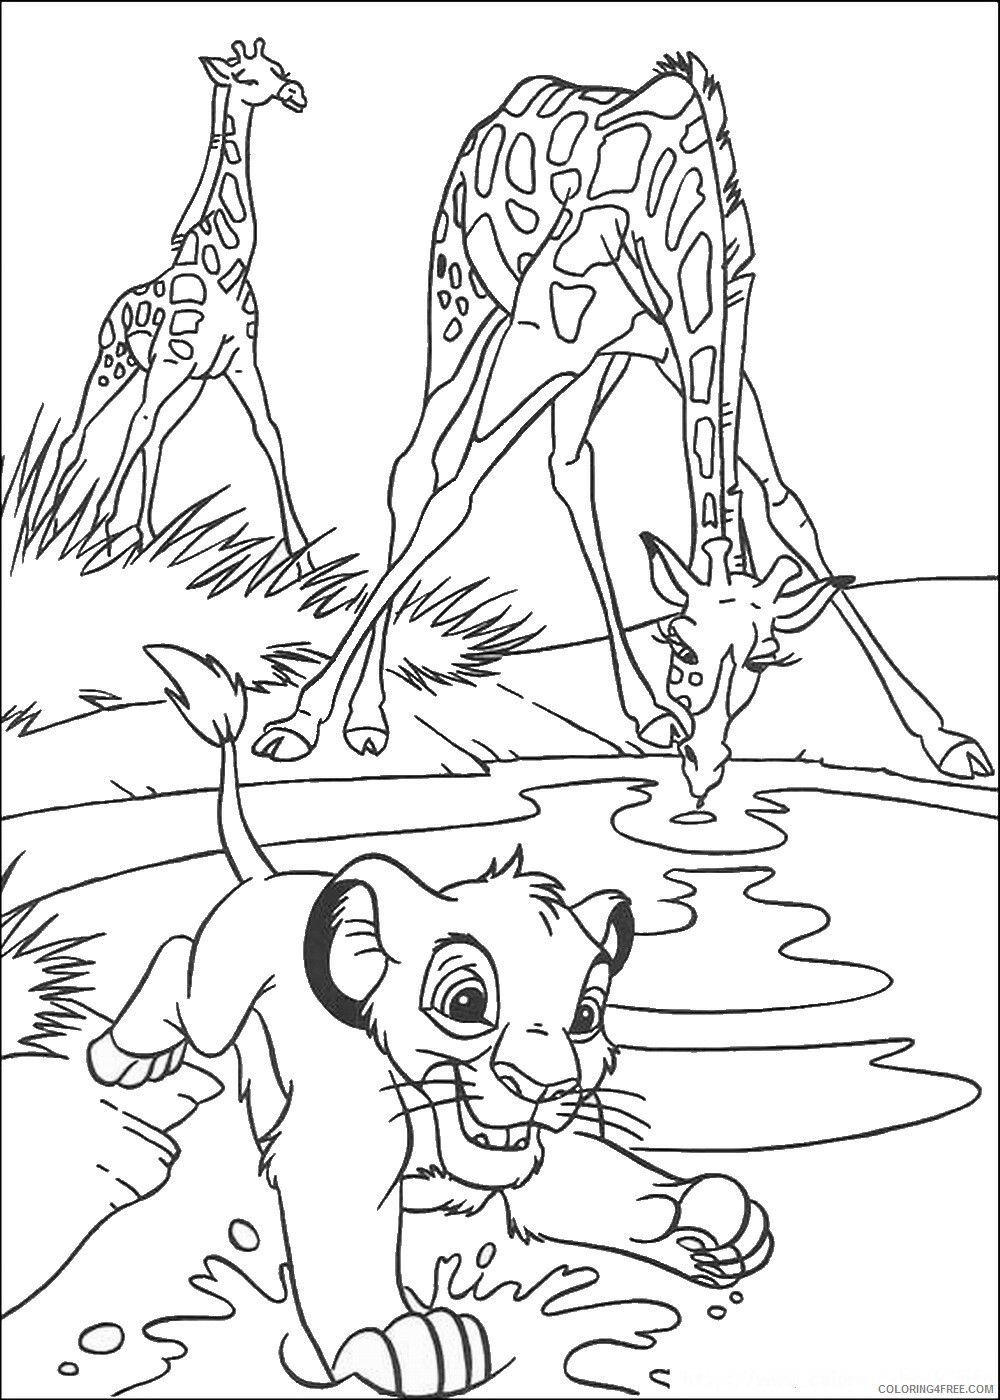 The Lion King Coloring Pages TV Film lionking_30 Printable 2020 09158 Coloring4free